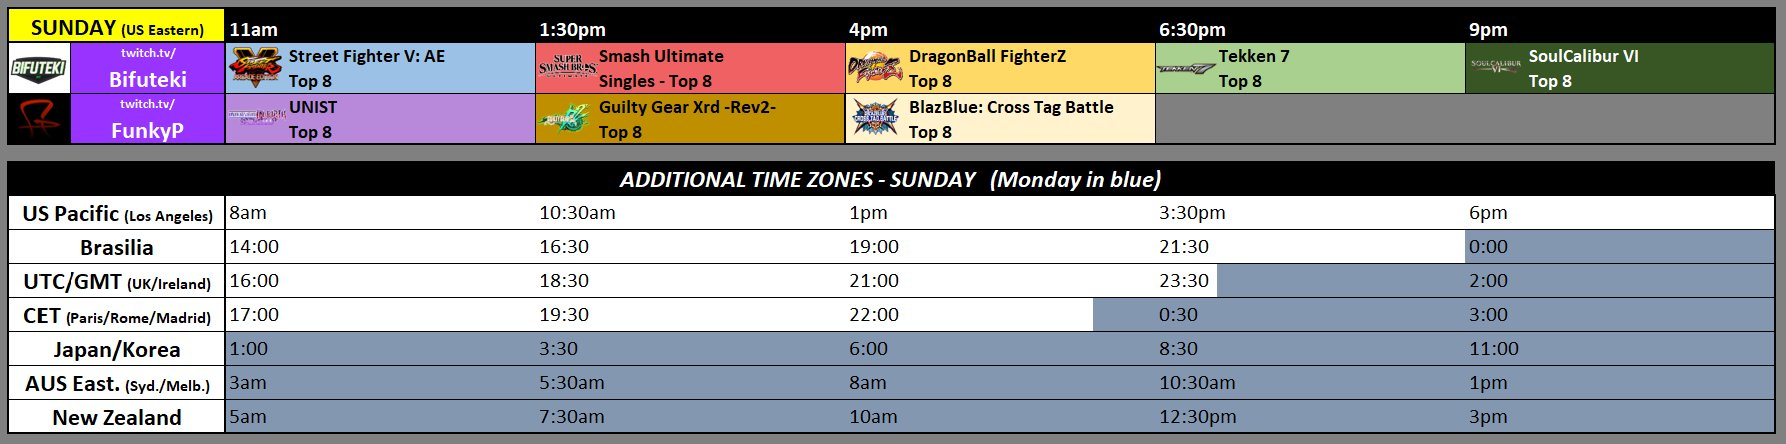 NEC 19 Event Schedule 2 out of 2 image gallery